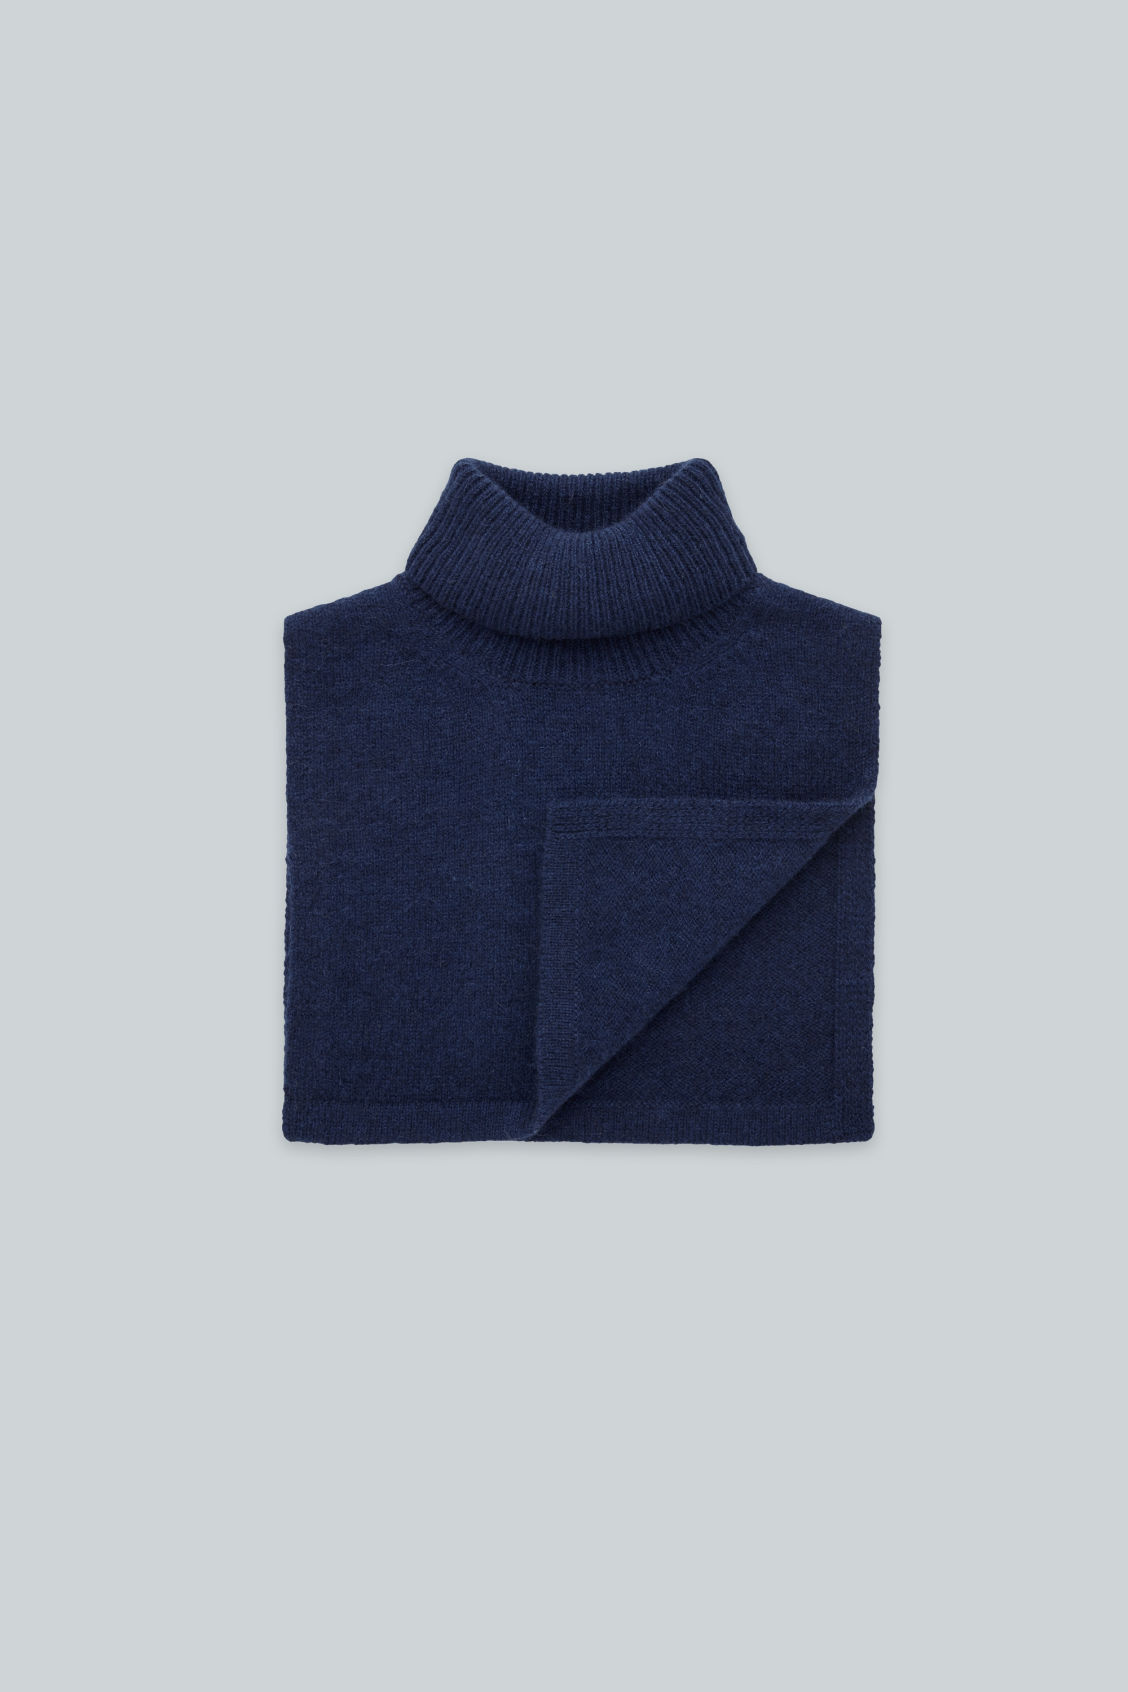 Detailed image of Cos  in blue